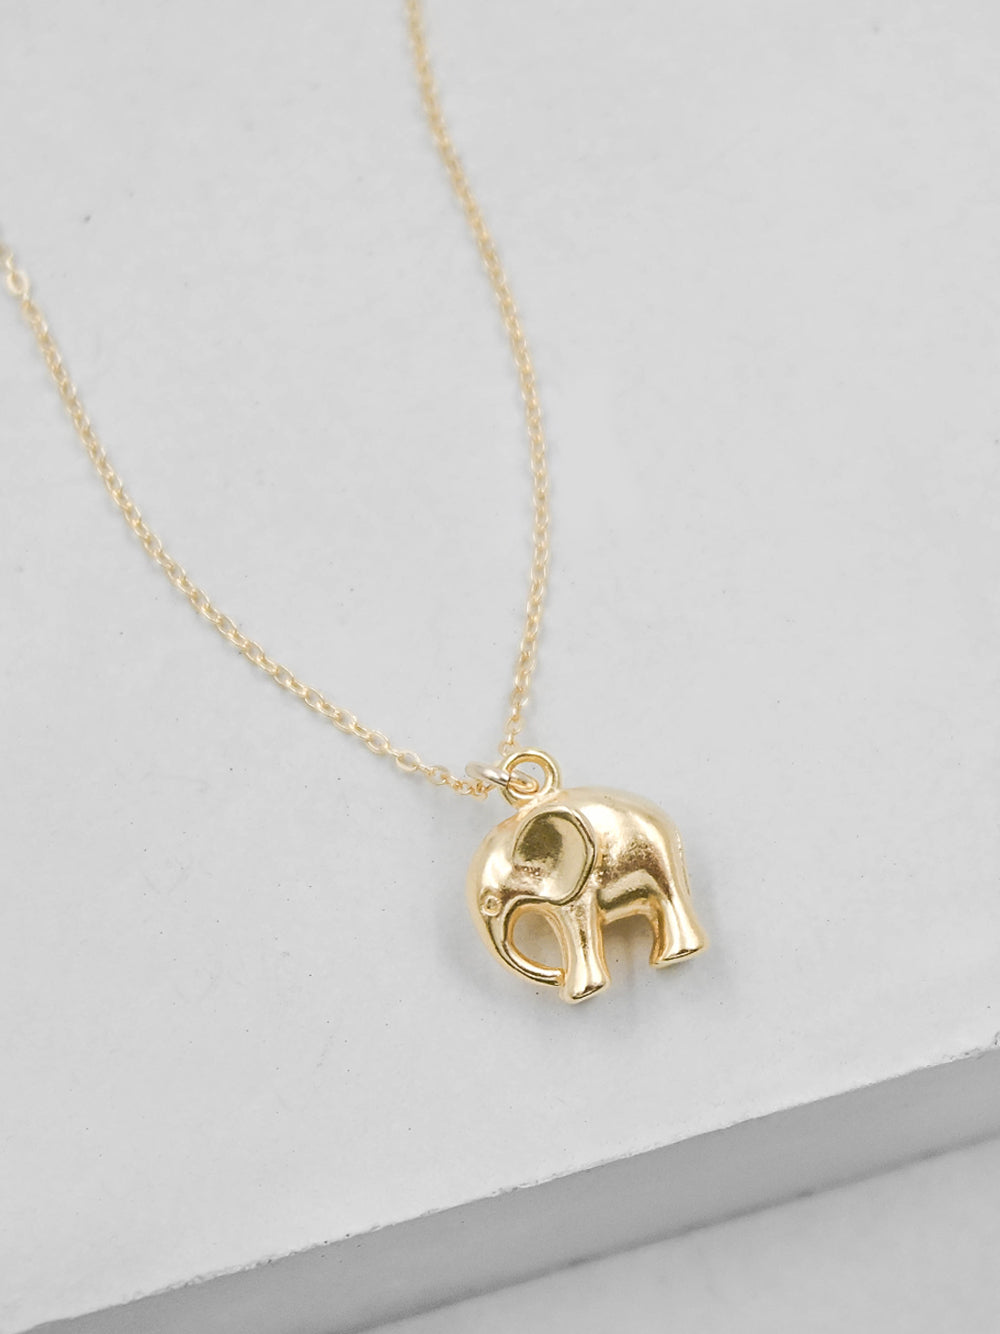 Gold Elephant Charm Necklace by The Faint Hearted Jewelry